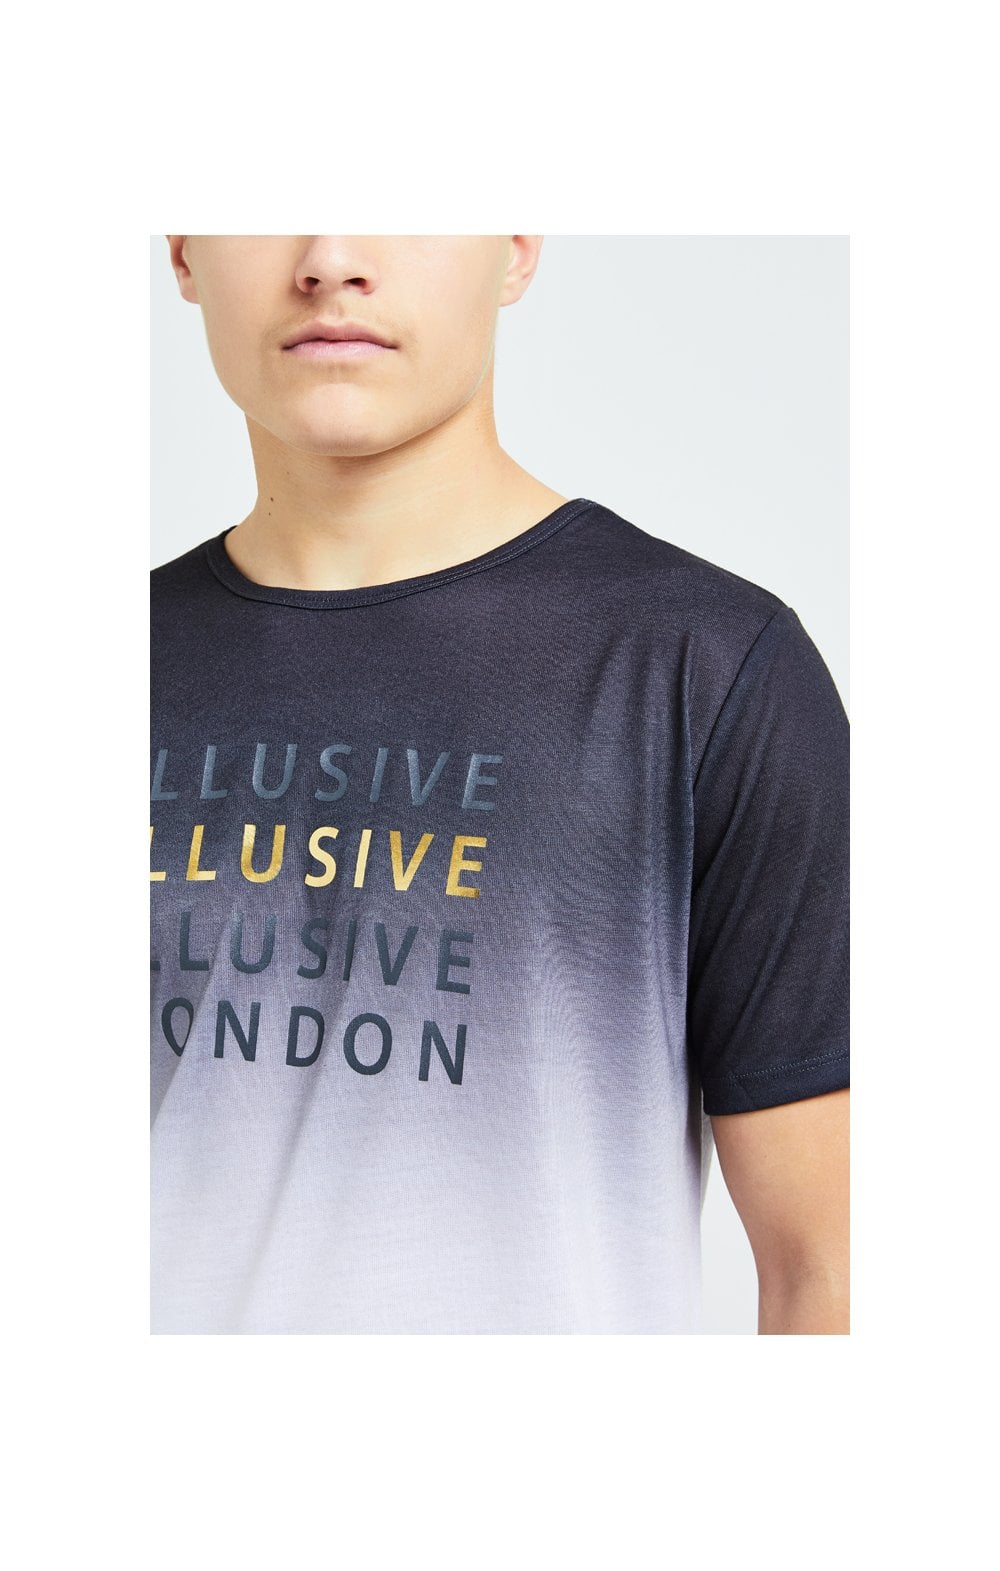 Illusive London Sovereign Fade Tee - Black & White